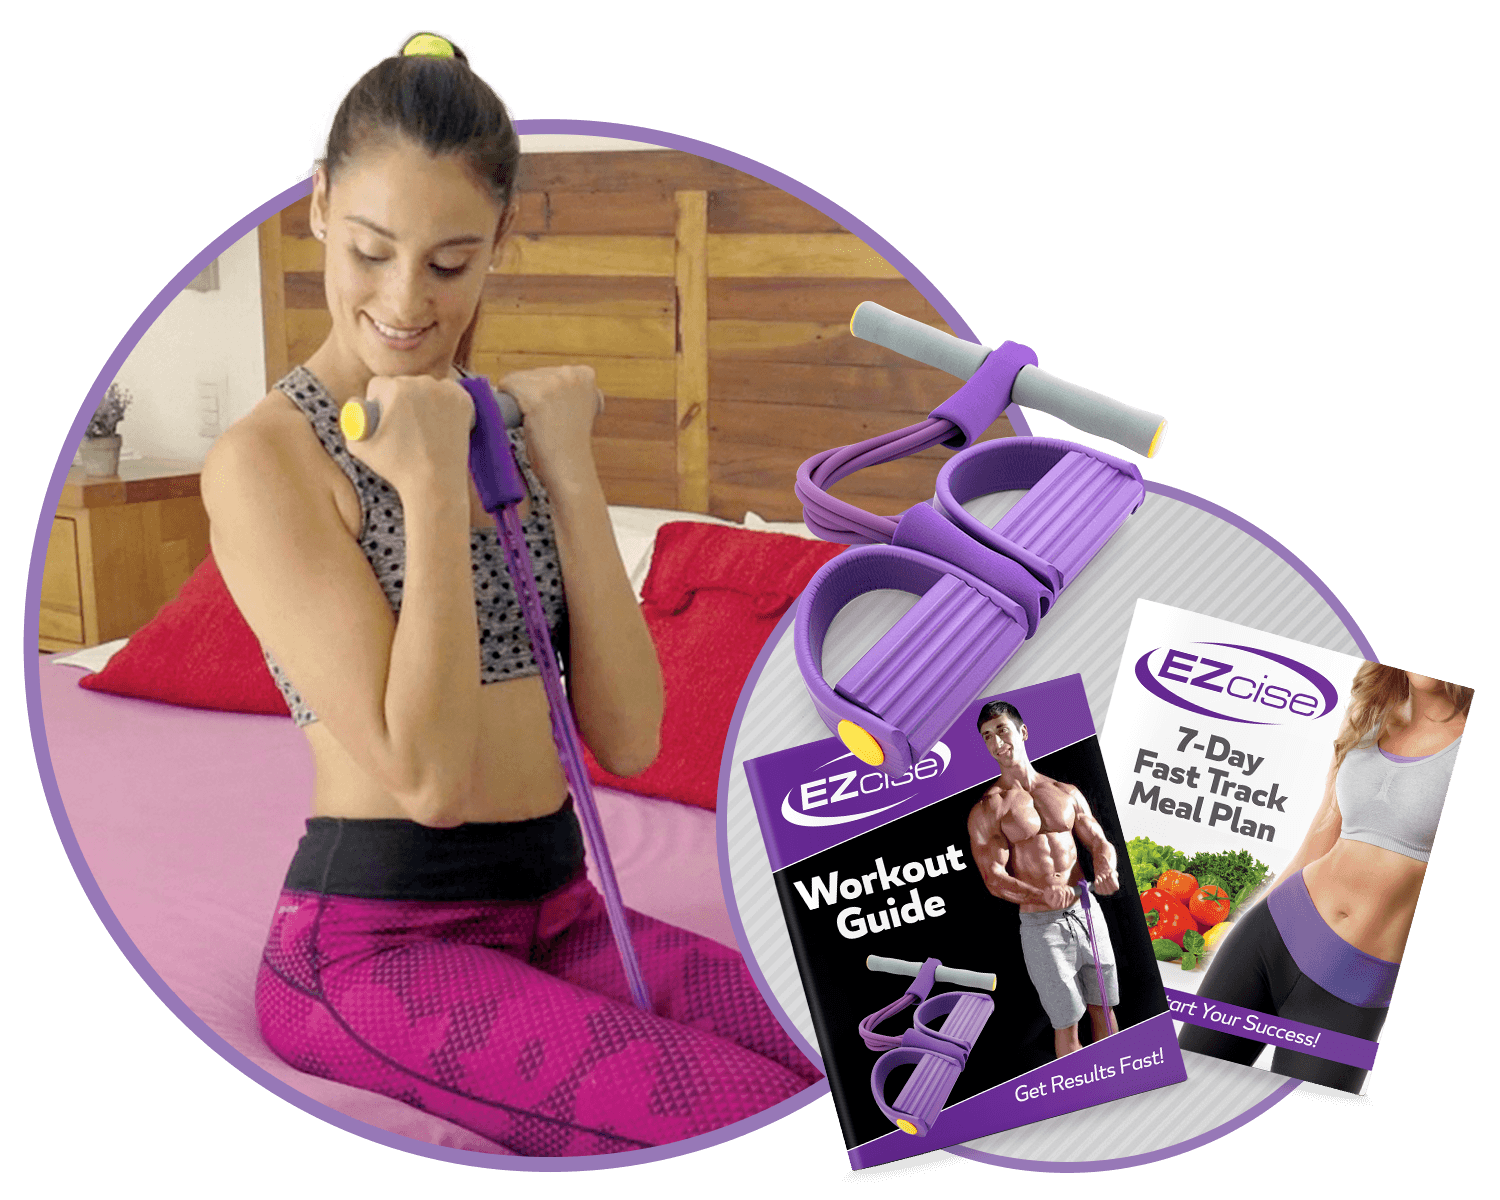 Ezcise double offer with meal plan and workout guide